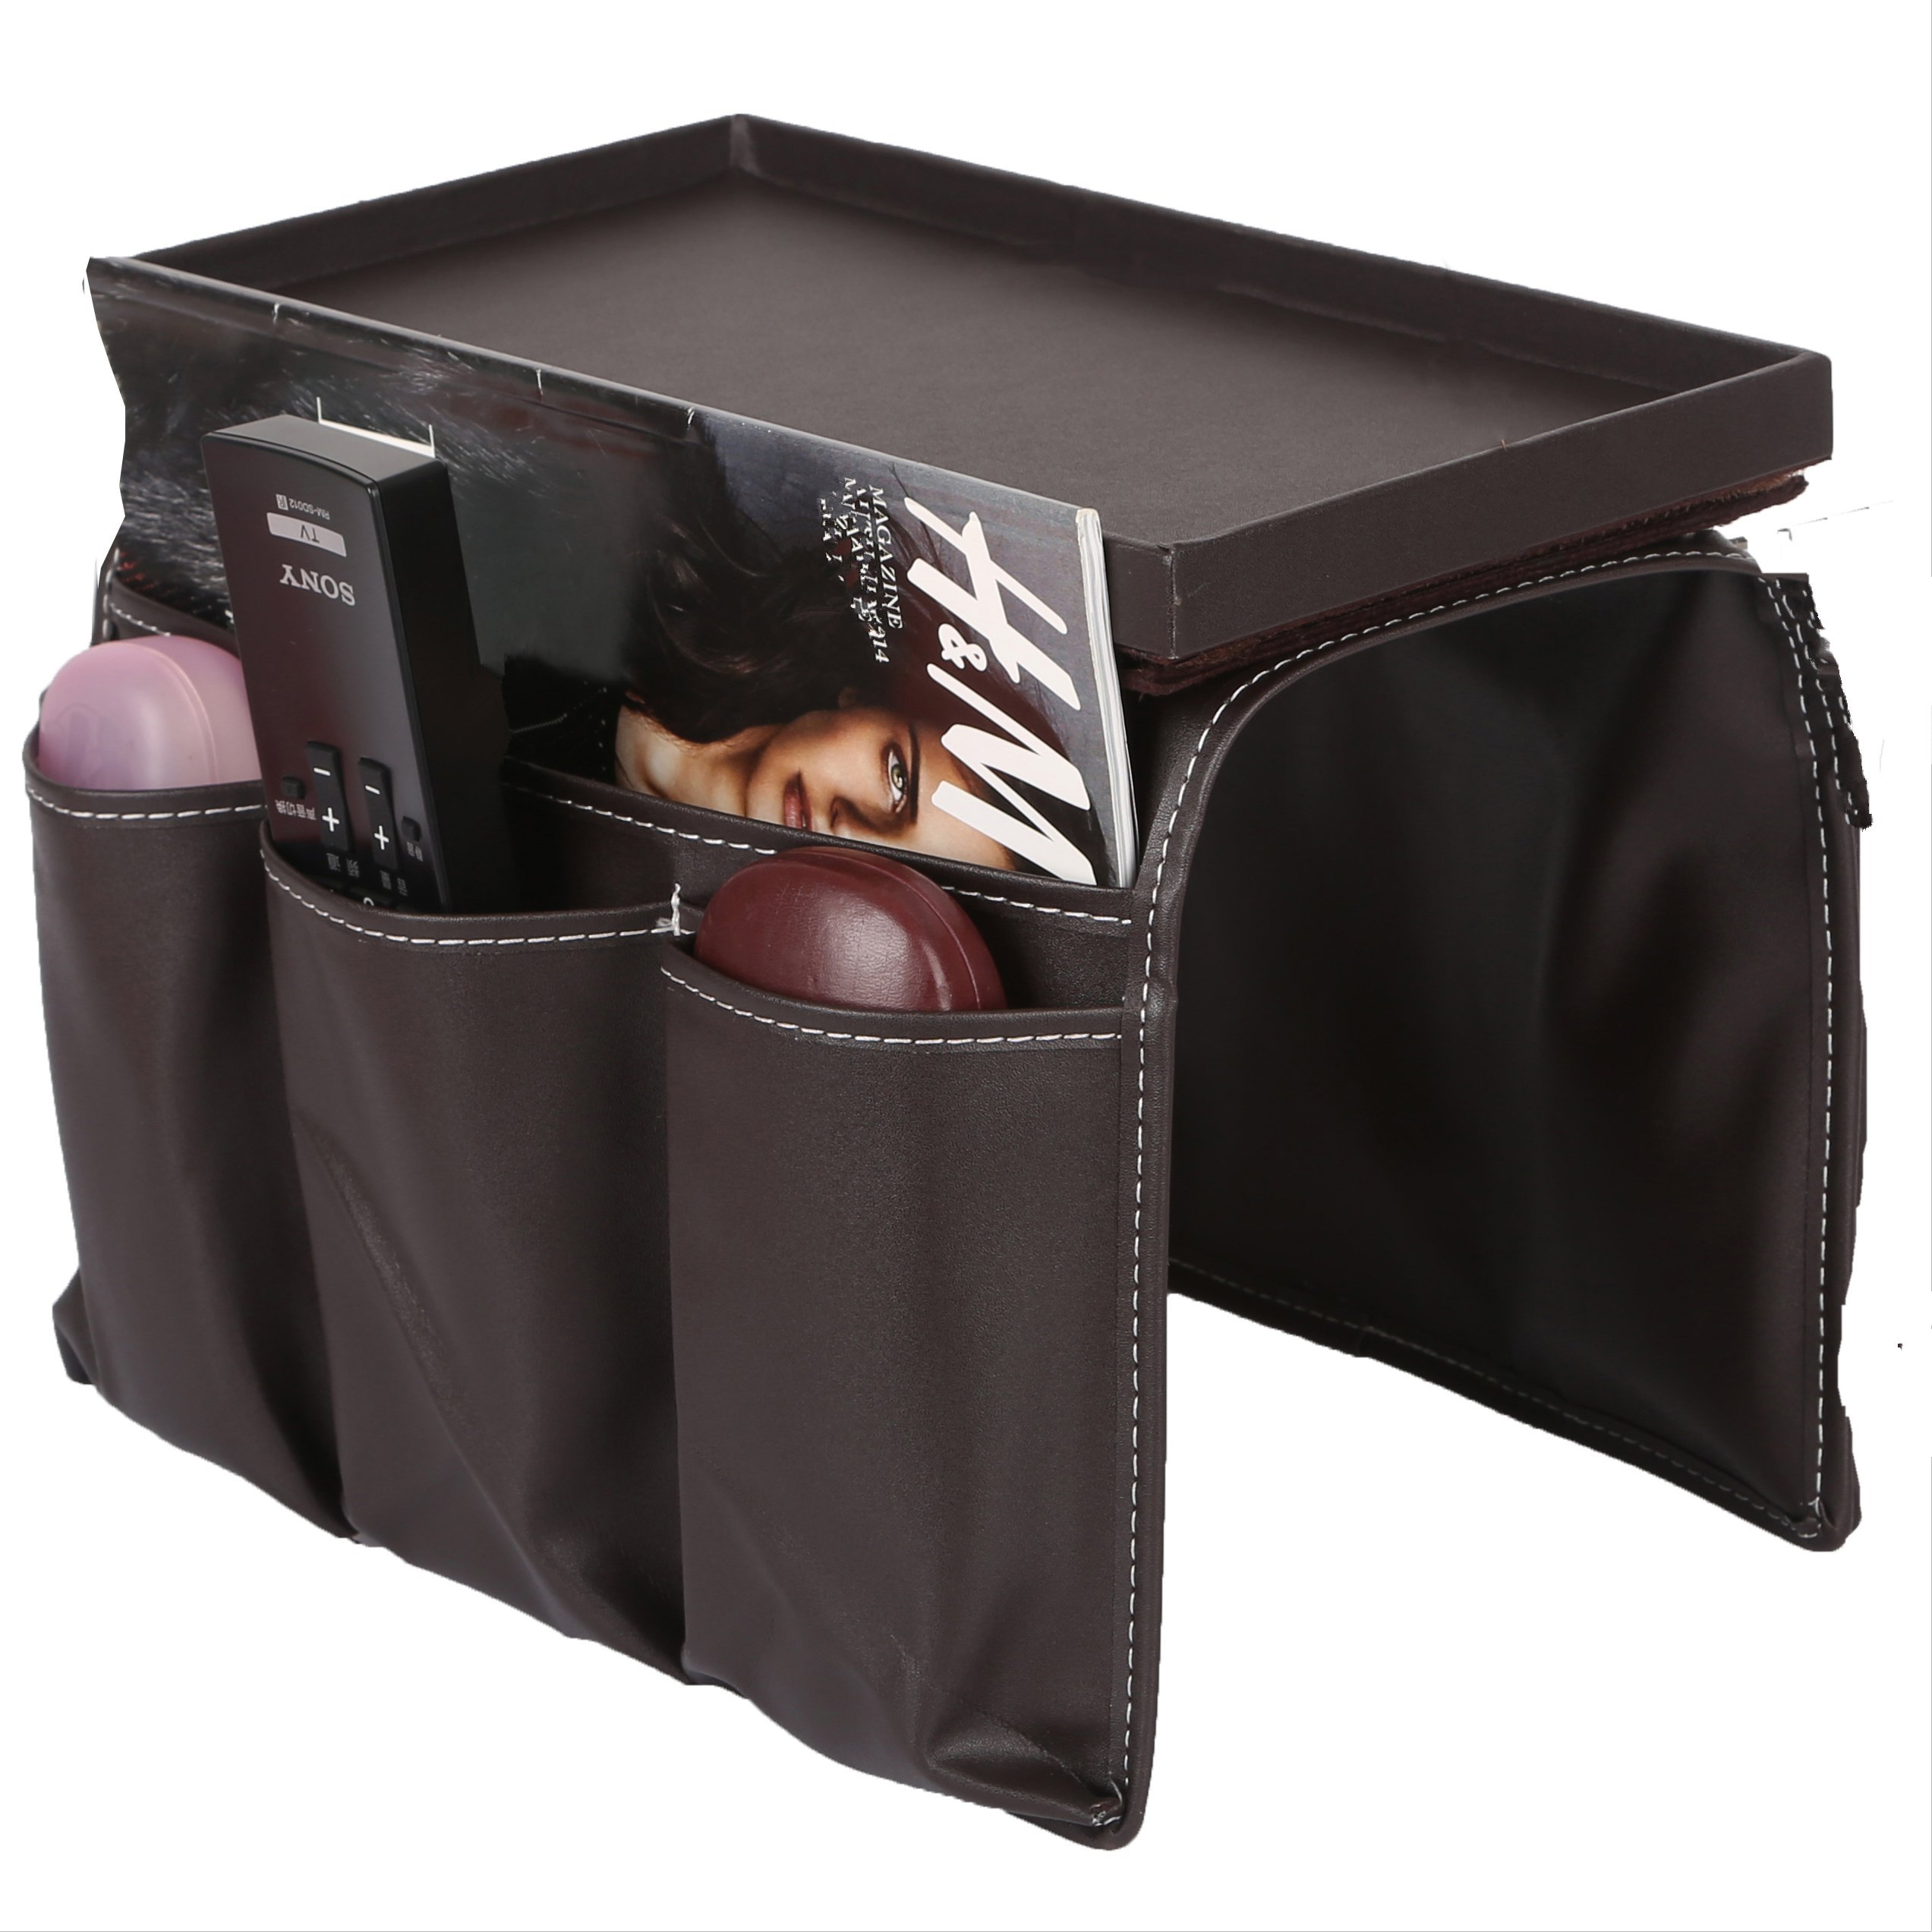 sofa couch remote control holder chair armrest caddy pocket organizer remote 642954051686 ebay. Black Bedroom Furniture Sets. Home Design Ideas